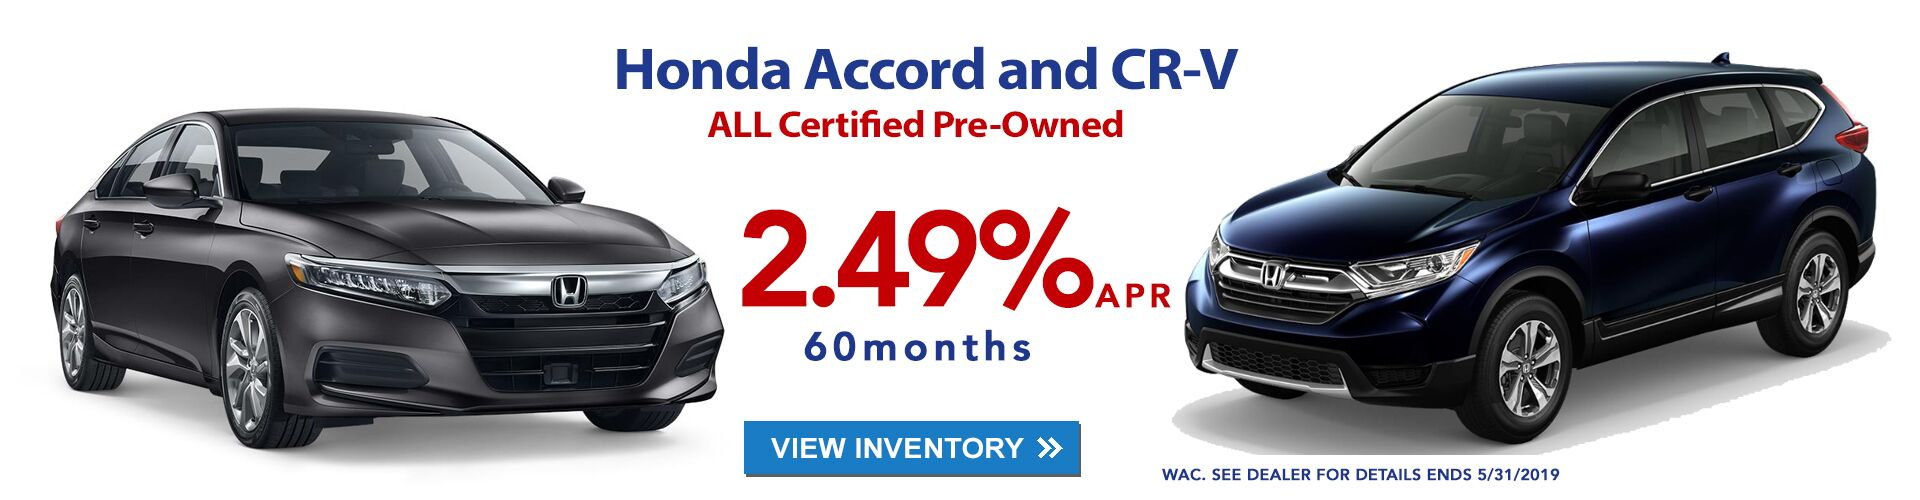 Used Accords and CR-Vs